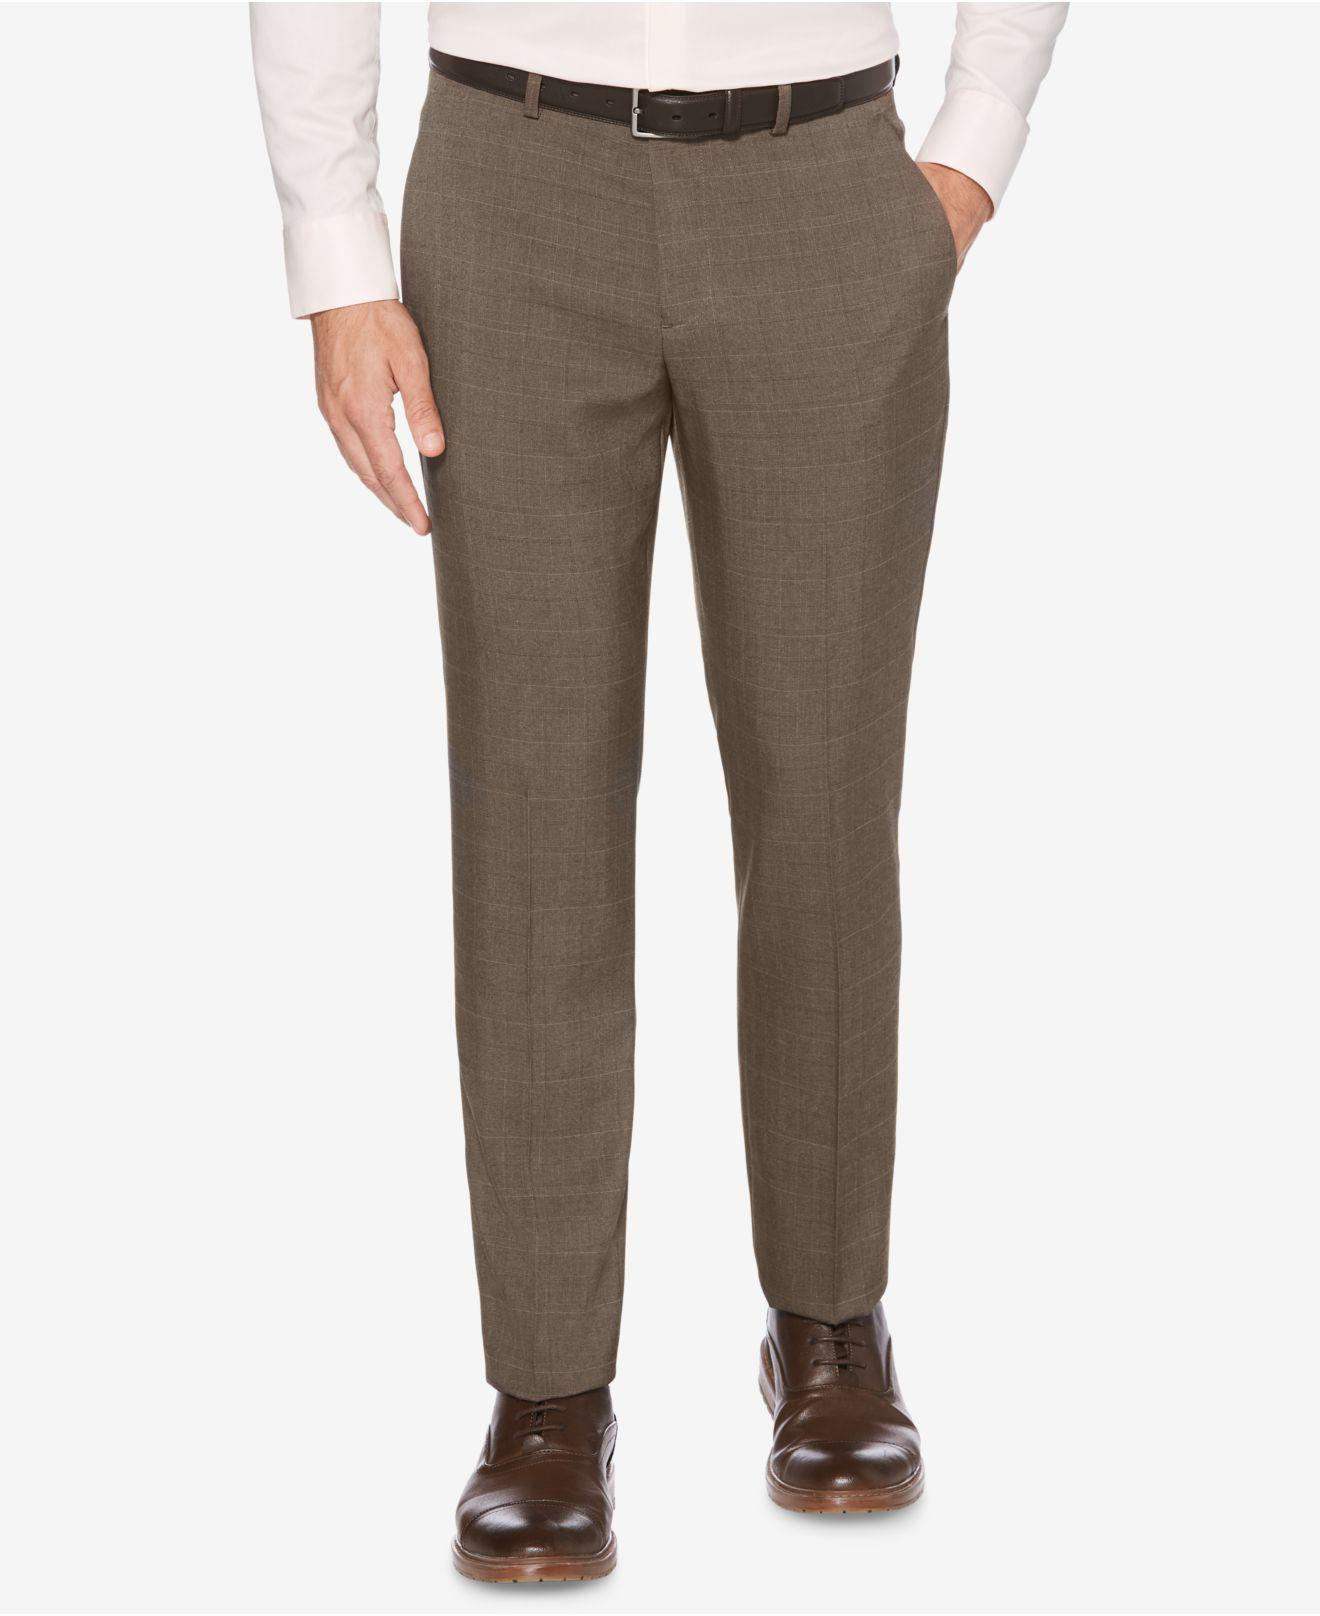 52938ee97 Mens Checkered Dress Pants - raveitsafe